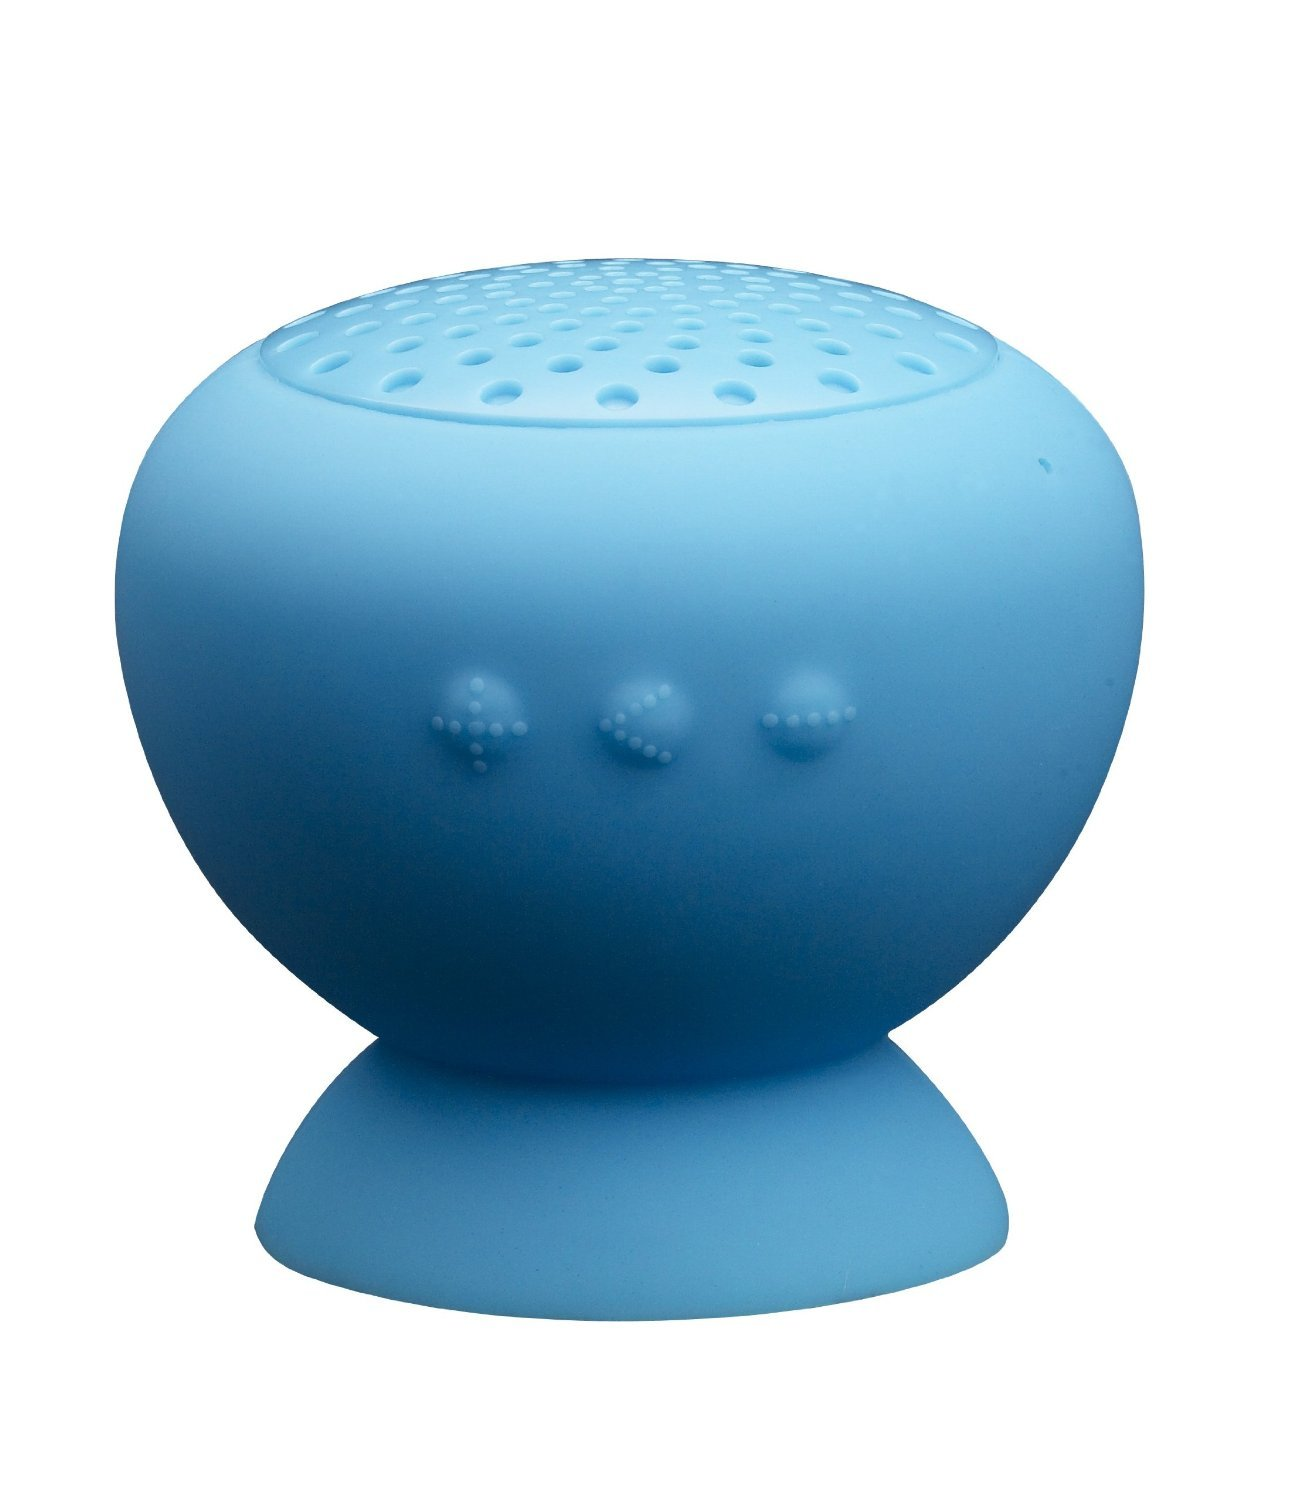 Sunbeauty® Waterproof Mini Mushroom Wireless Bluetooth Speaker (blue) cd проигрыватель other ems ru bluetooth mic bluetooth mushroom speaker